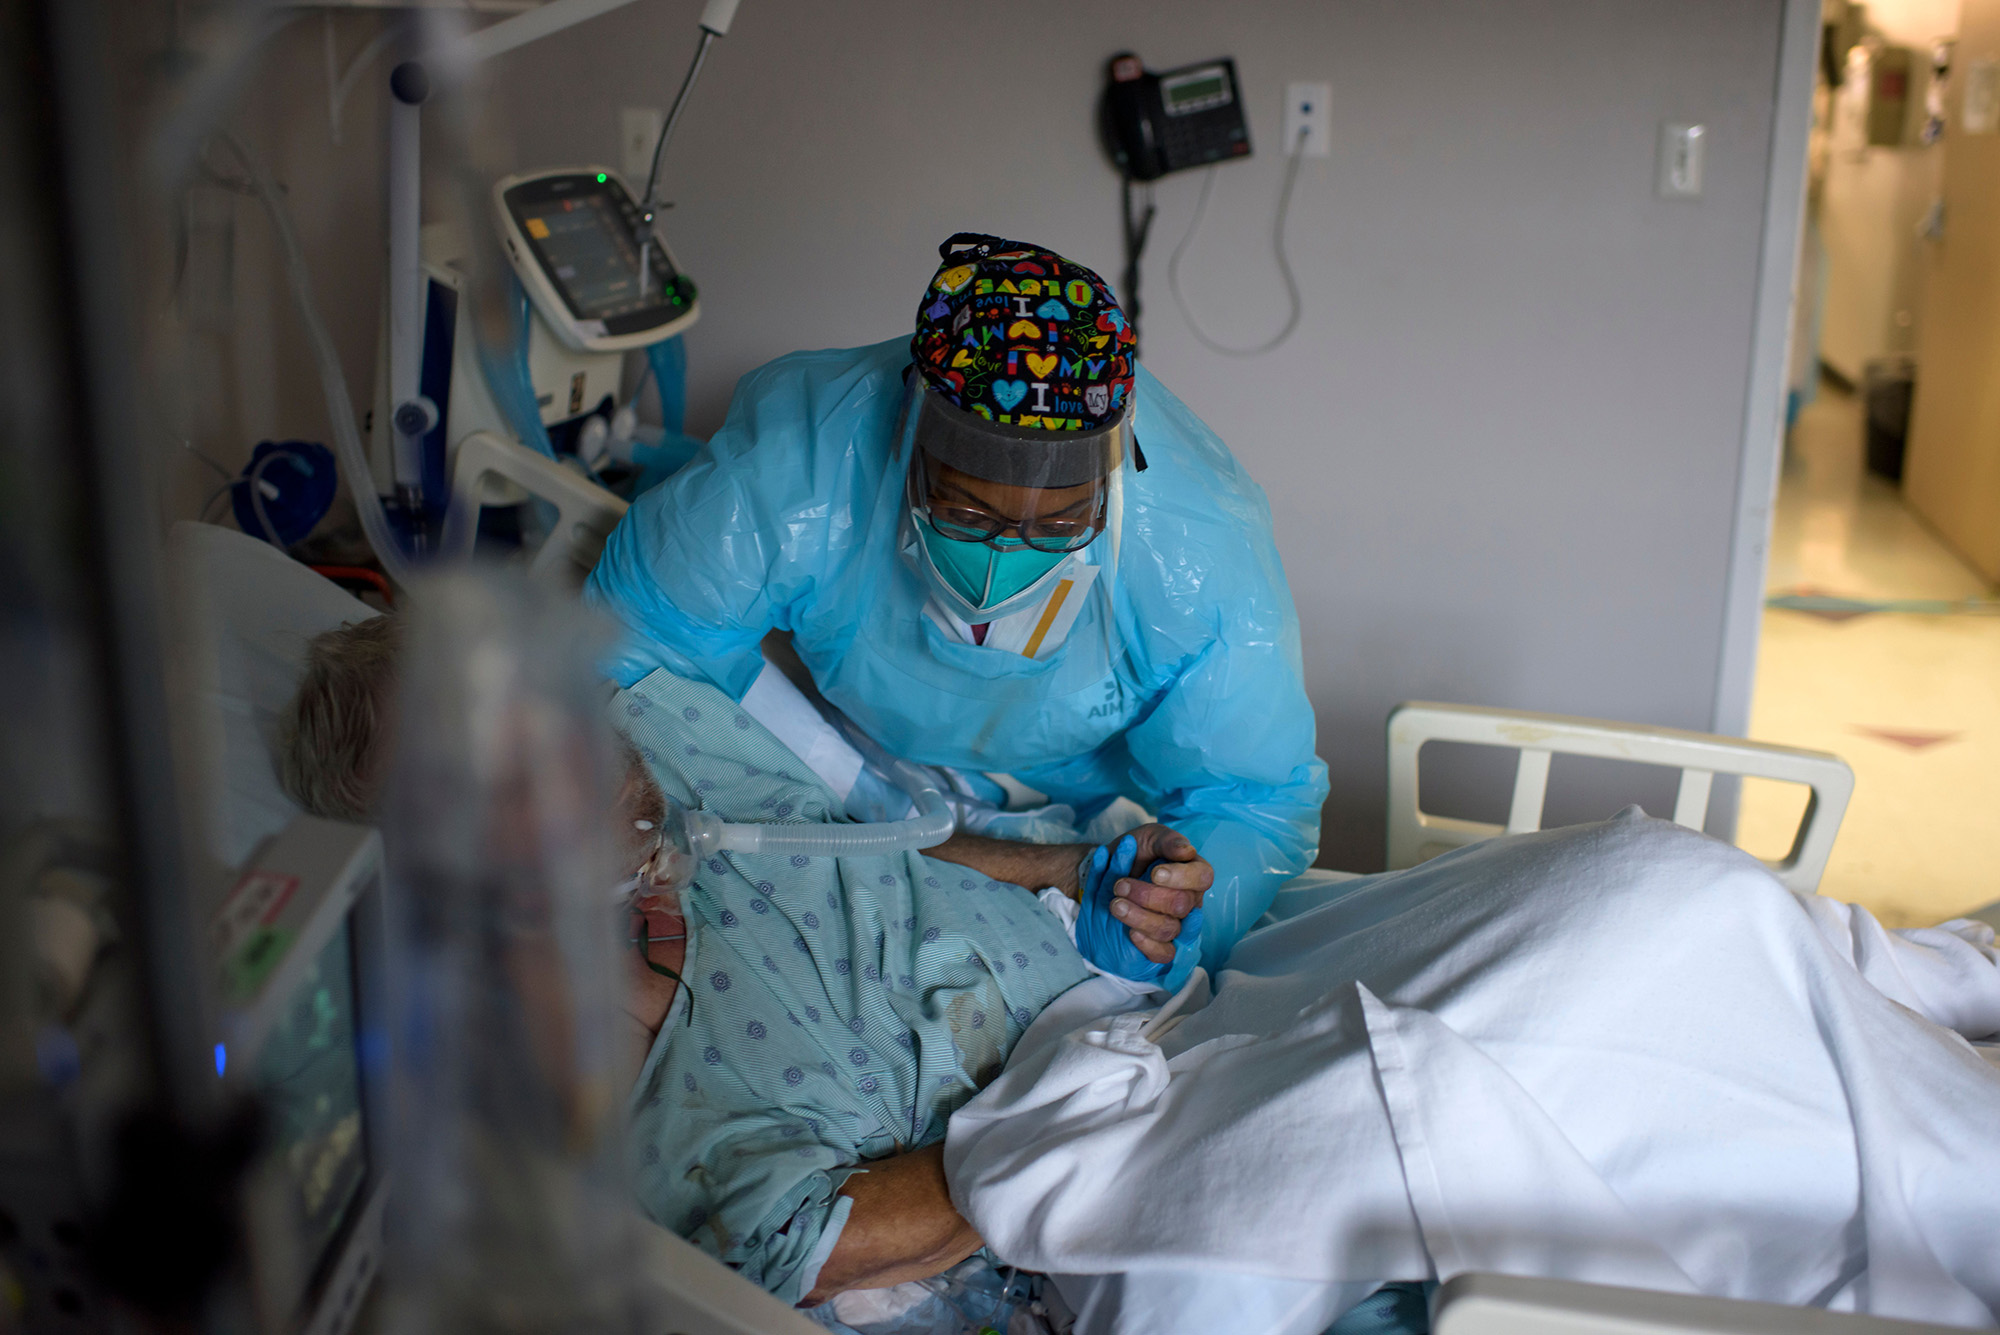 Health care worker Demetra Ransom comforts a patient in the Covid-19 ward at United Memorial Medical Center in Houston, Texas, on December 4.